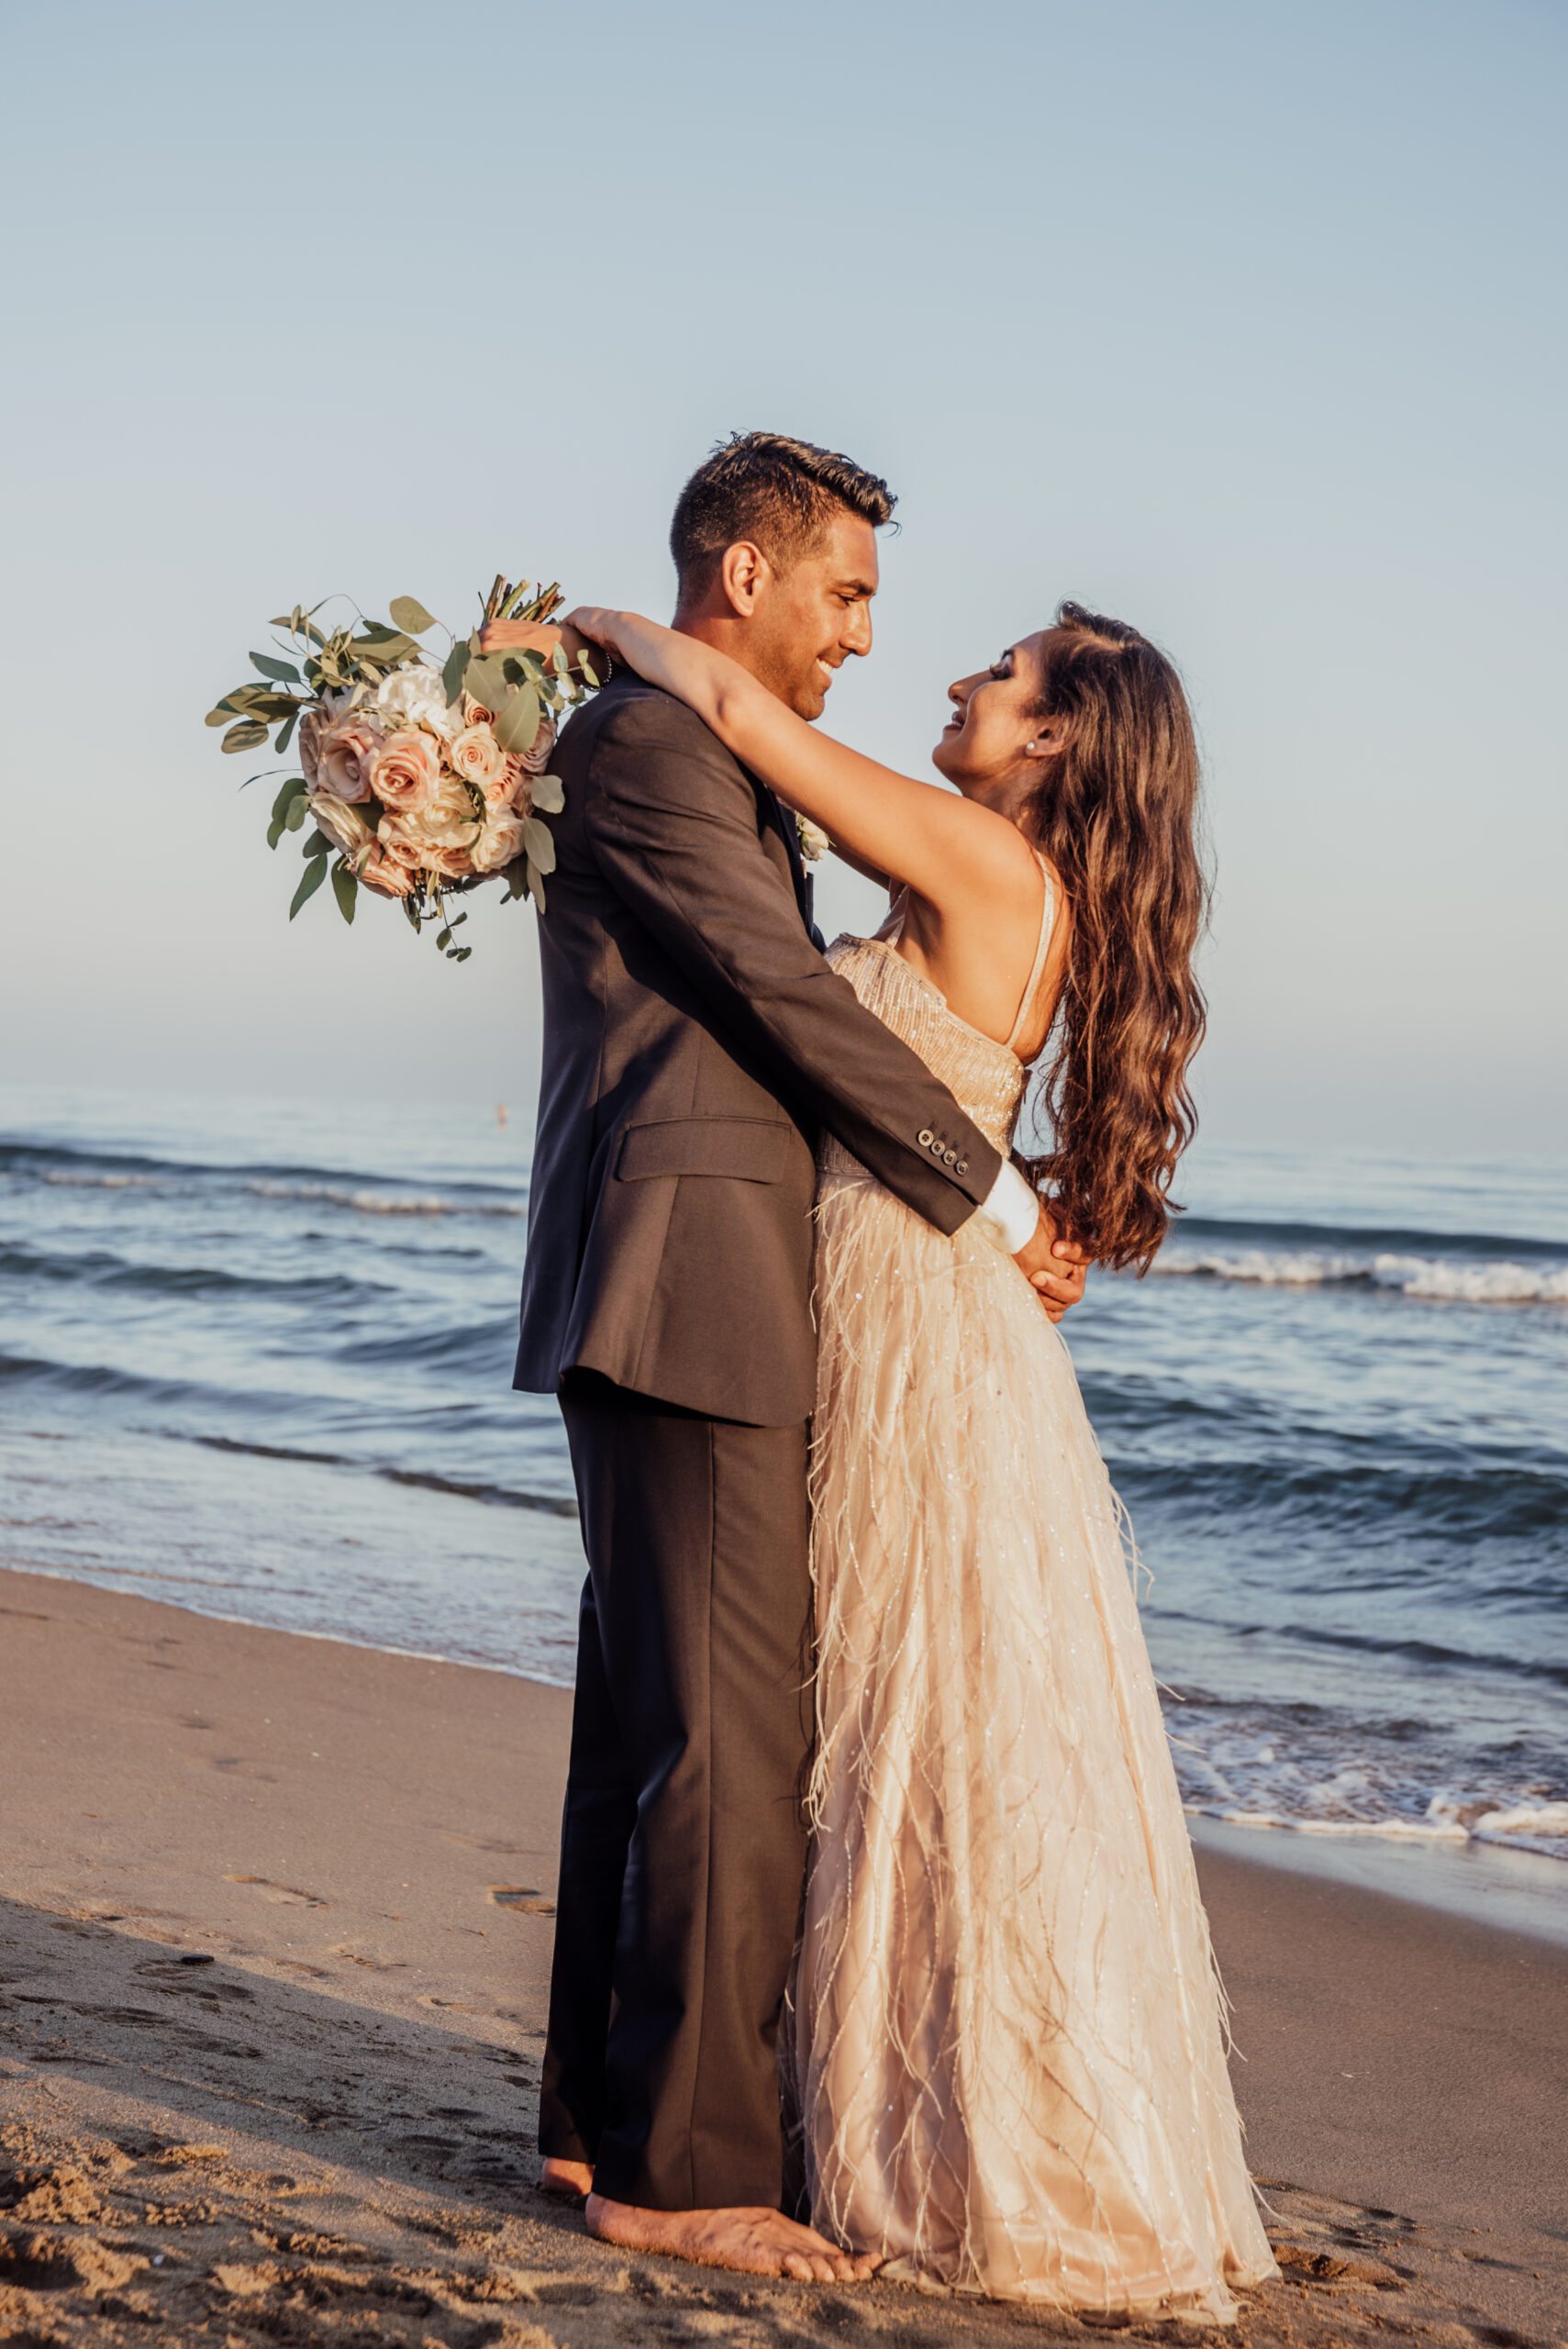 The bride and groom at the beach, on the villa's doorstep - Rebecca Davidson Photography